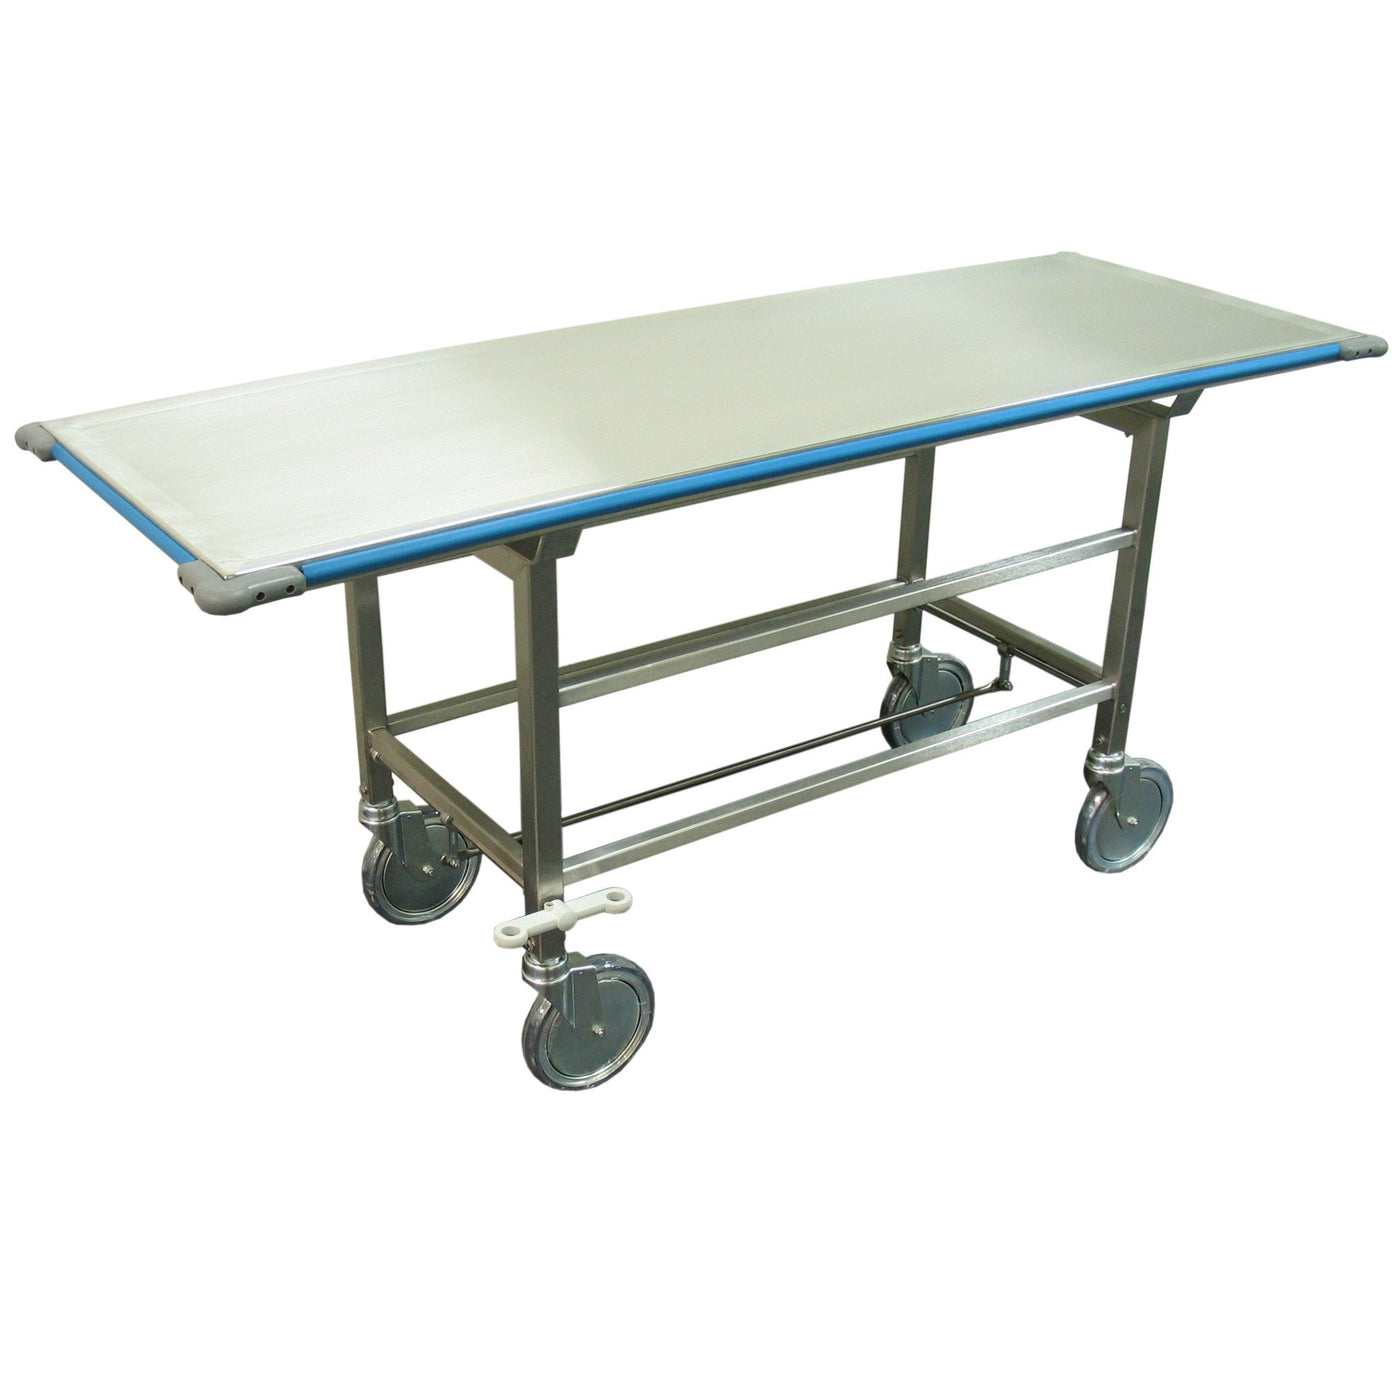 Stretcher/Cadaver Carrier-Body Transporter-Mortech Manufacturing Company Inc. Quality Stainless Steel Autopsy, Morgue, Funeral Home, Necropsy, Veterinary / Anatomy, Dissection Equipment and Accessories